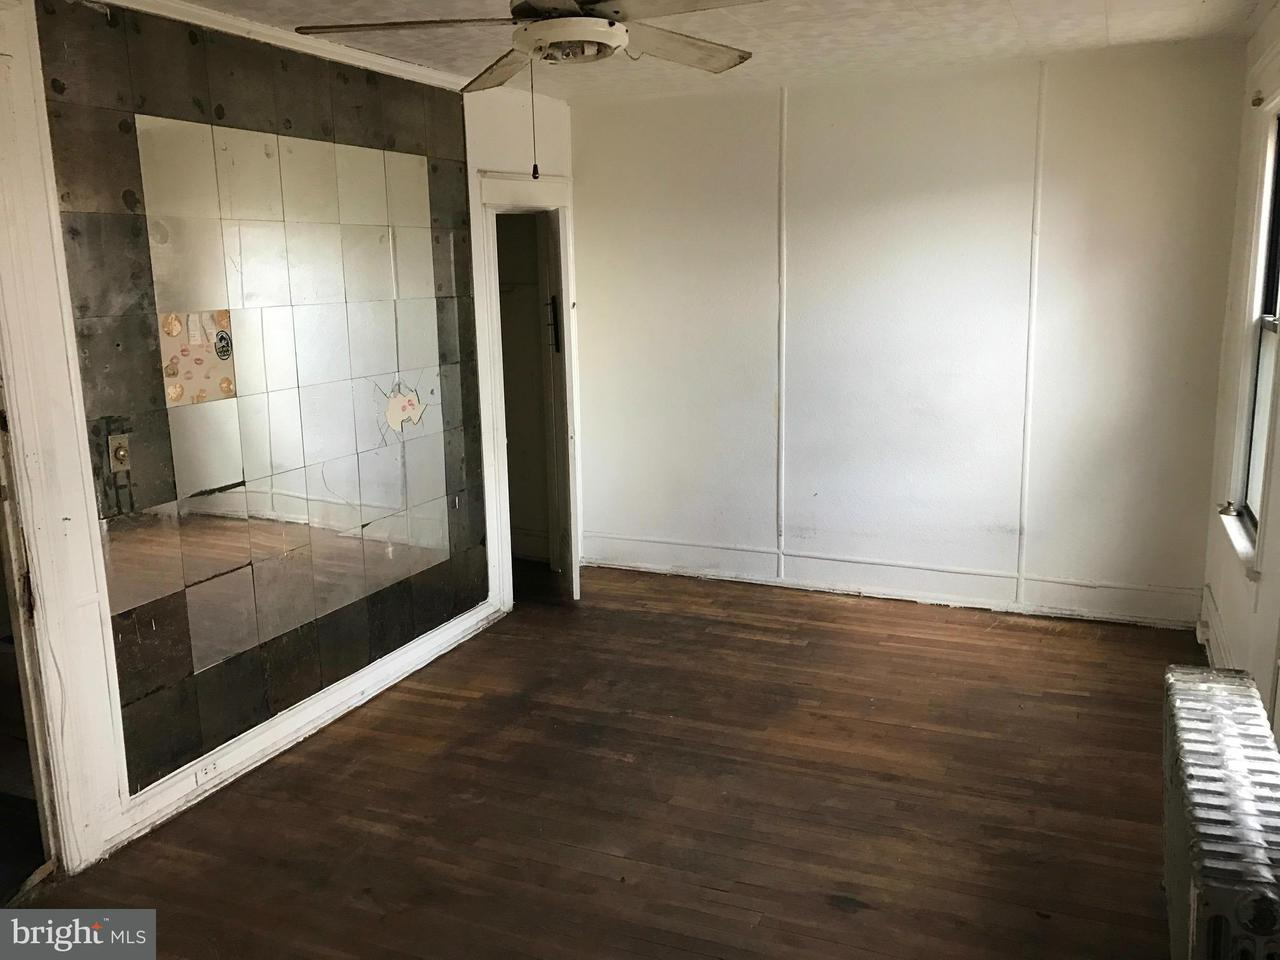 Additional photo for property listing at 6202 Georgia Ave Nw 6202 Georgia Ave Nw Washington, District Of Columbia 20011 United States